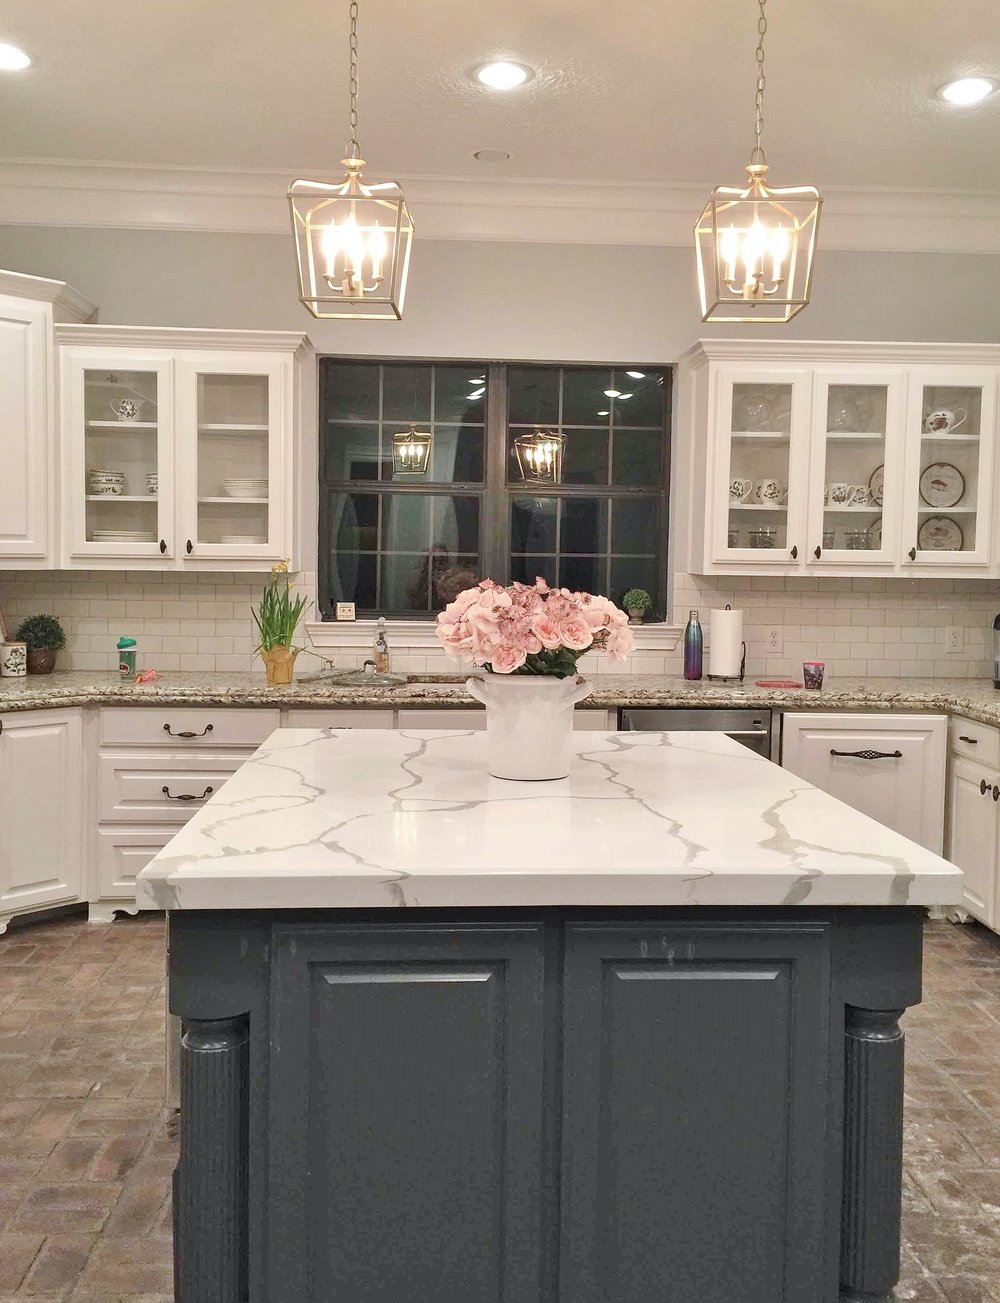 AFTER - The impact of the new simple backsplash that blended with the upper cabinets made the kitchen look more up to date and minimized the spotty granite perimeter counters. #whitemarble #marblecountertop #kitchenremodel